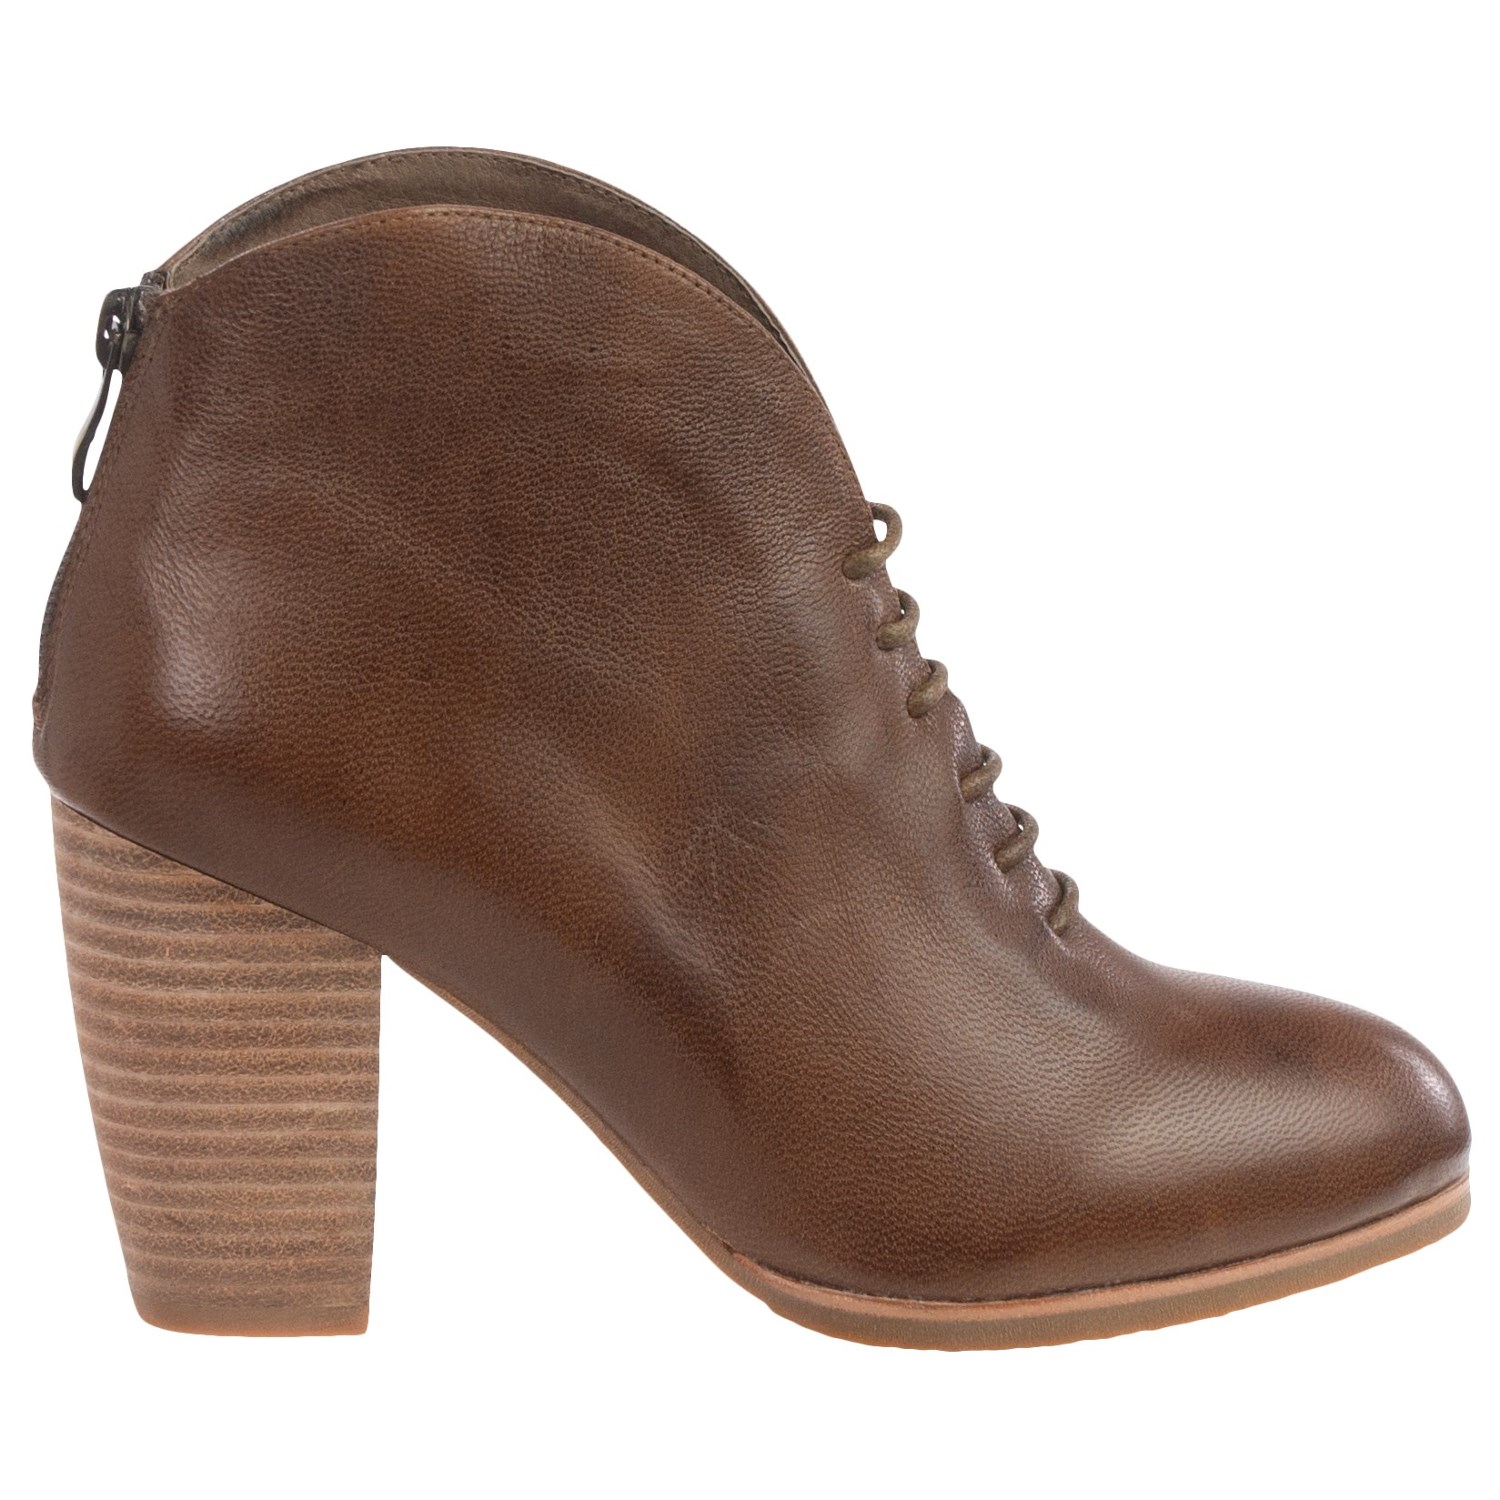 Leather Ankle Boots For Women VJATcV5T